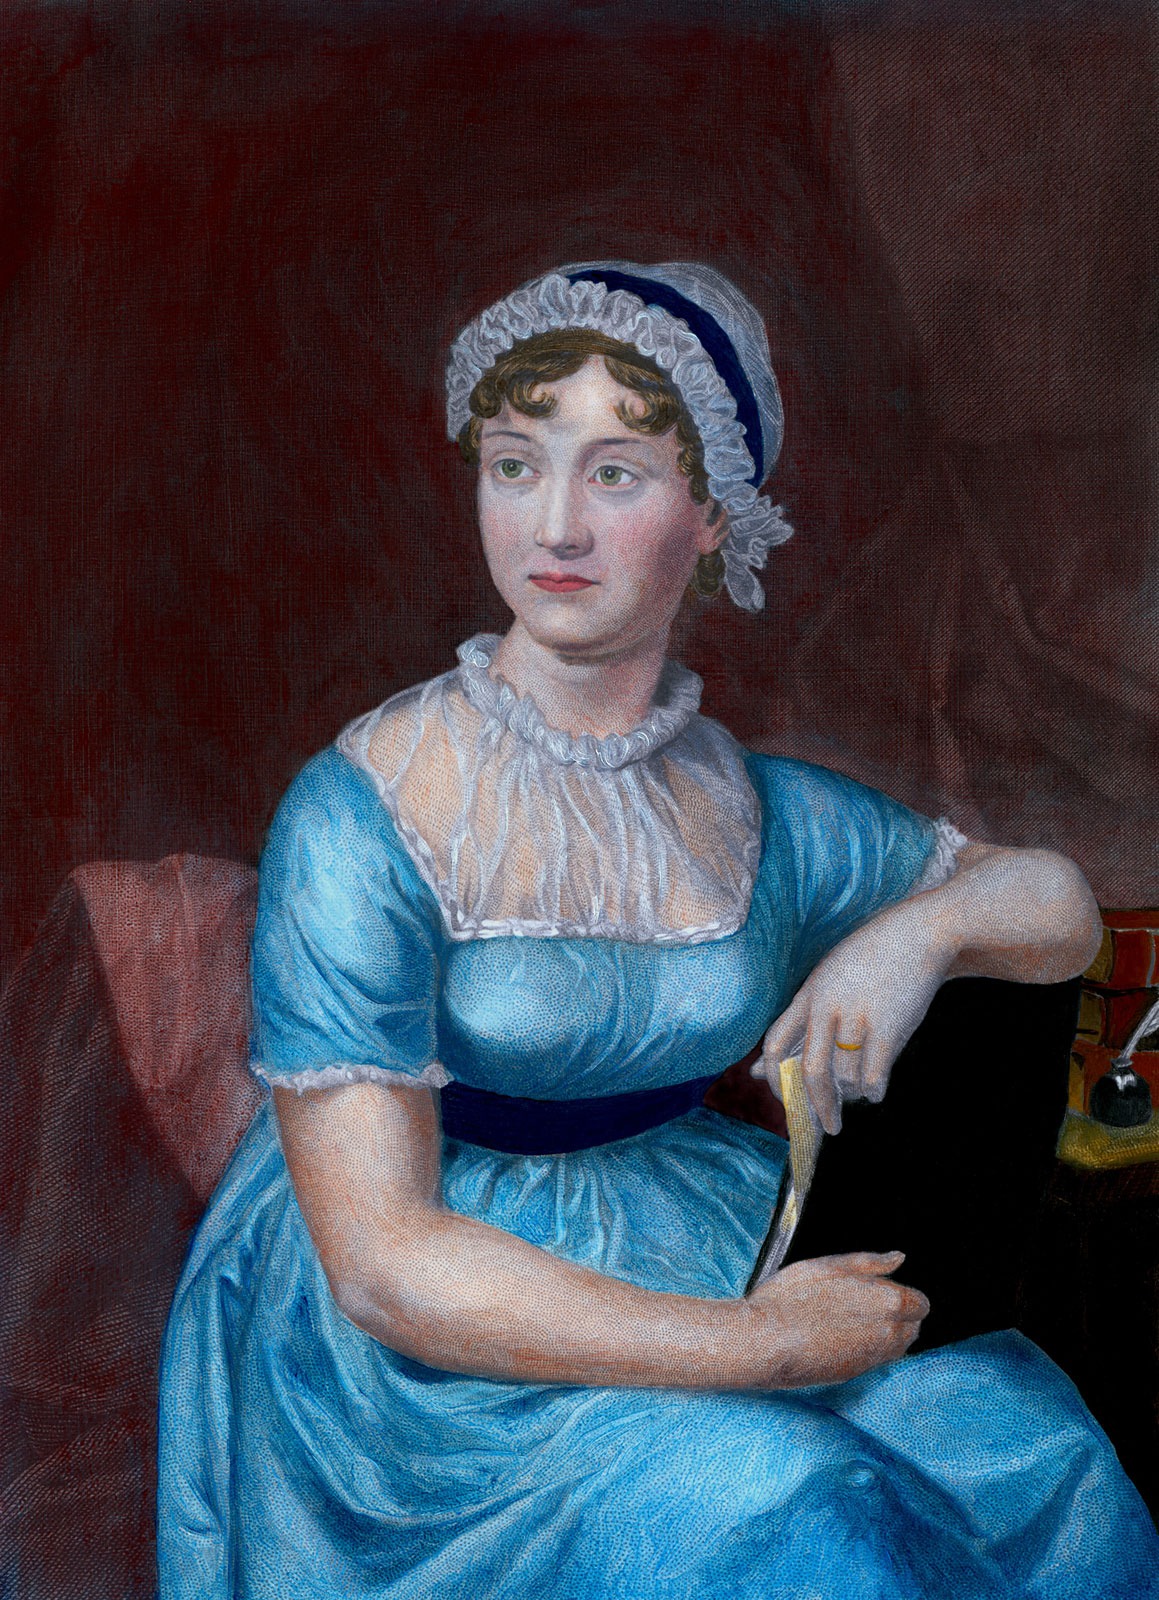 She was a famous 19th century novelist whose work remains popular to this day. Austen's novels were successful enough to give her some independence, but her works were not associated with her name until after her death.